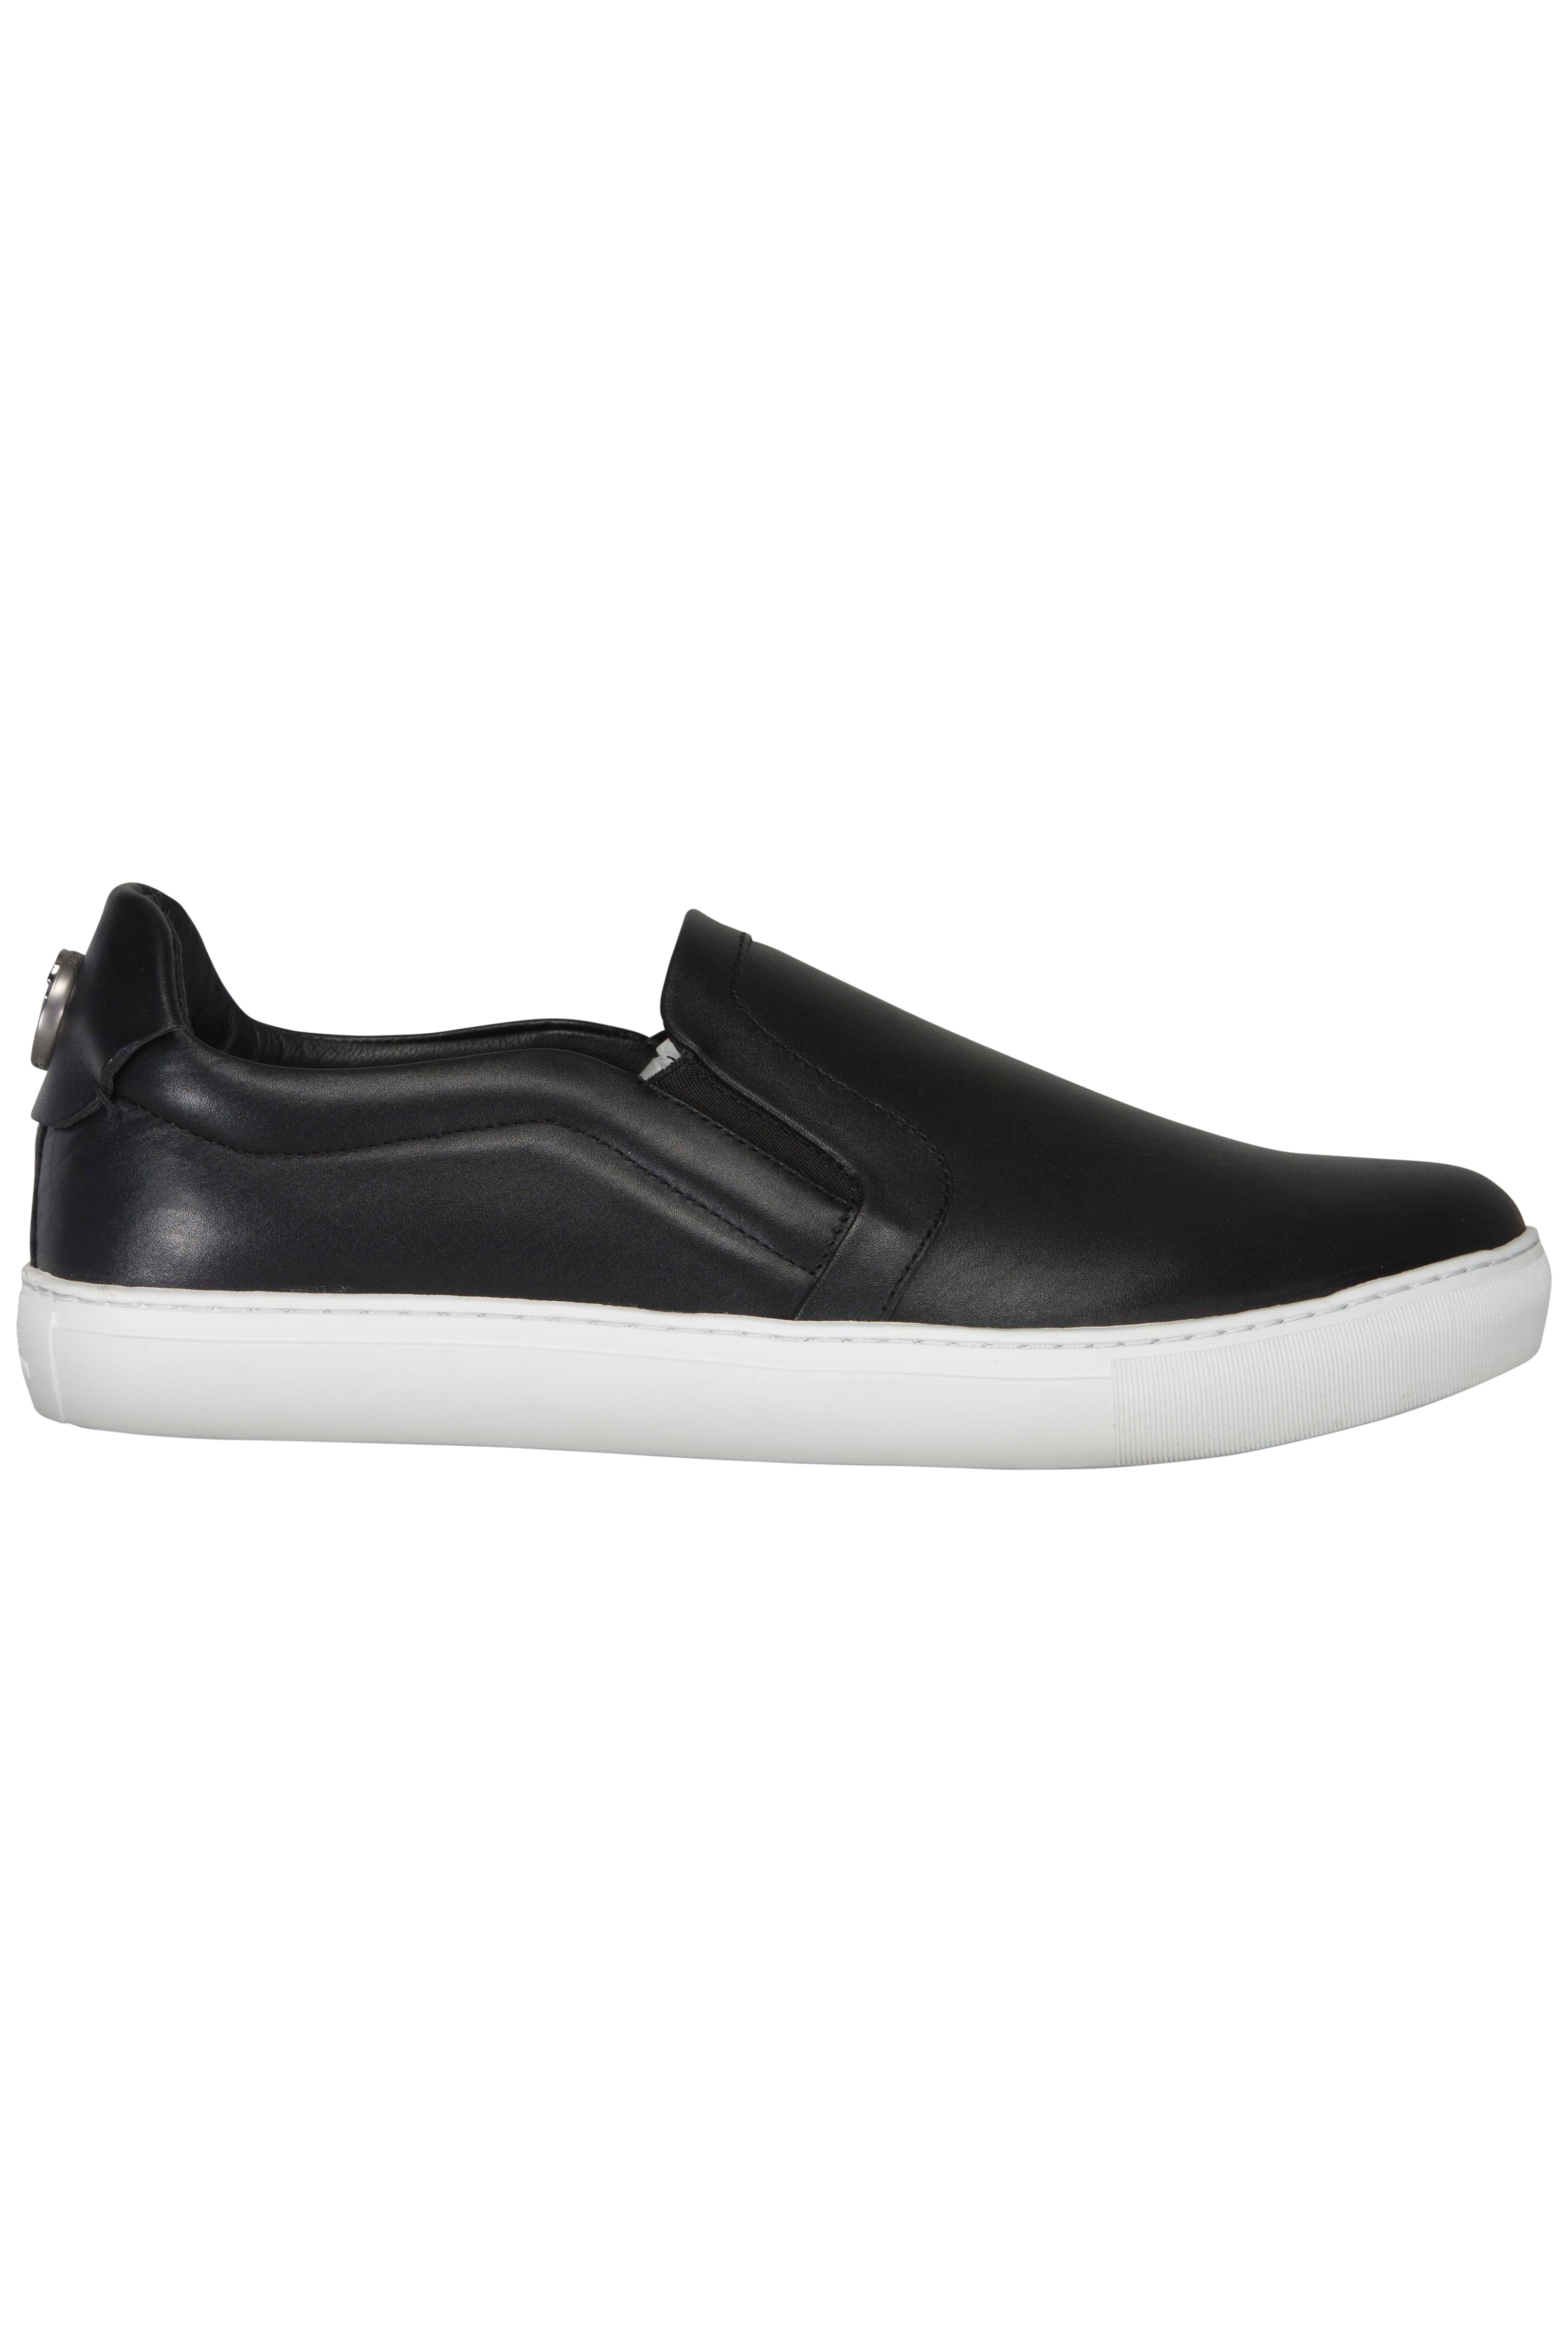 Image of   Versace Low Sneakers Black - 40